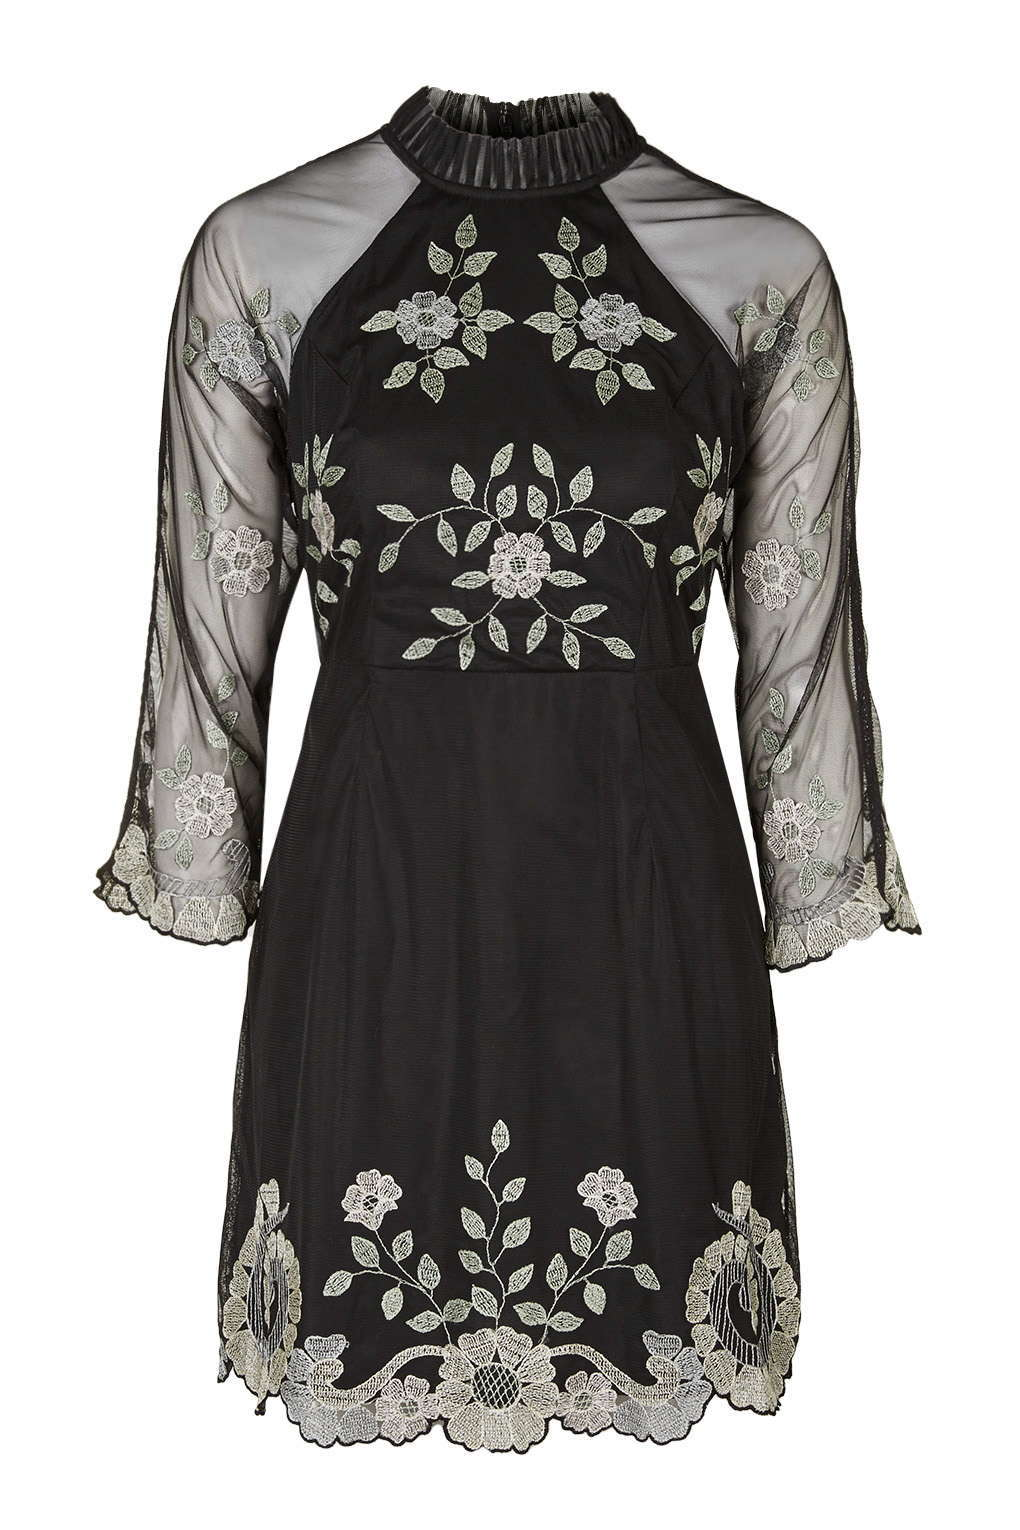 No. 3 in Christmas eve outfits : Embroidered Shift Dress @ £120.00